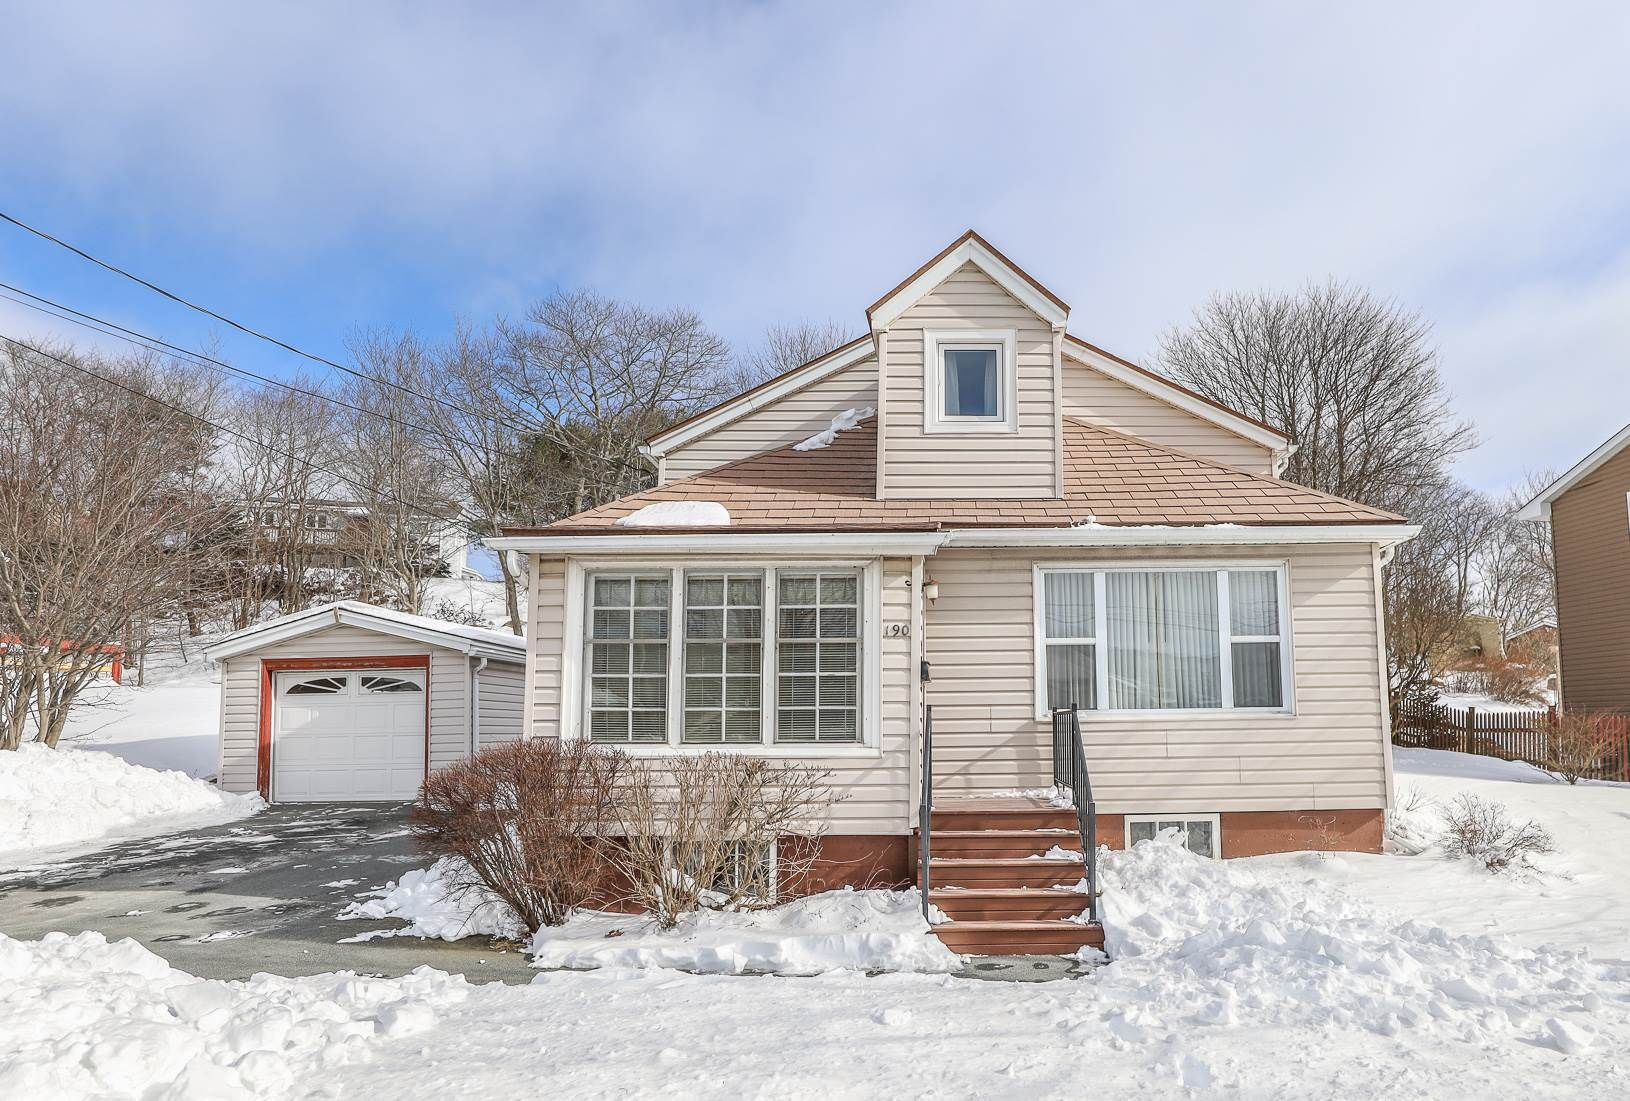 Main Photo: 190 Herring Cove Road in Halifax: 8-Armdale/Purcell`s Cove/Herring Cove Residential for sale (Halifax-Dartmouth)  : MLS®# 202102463